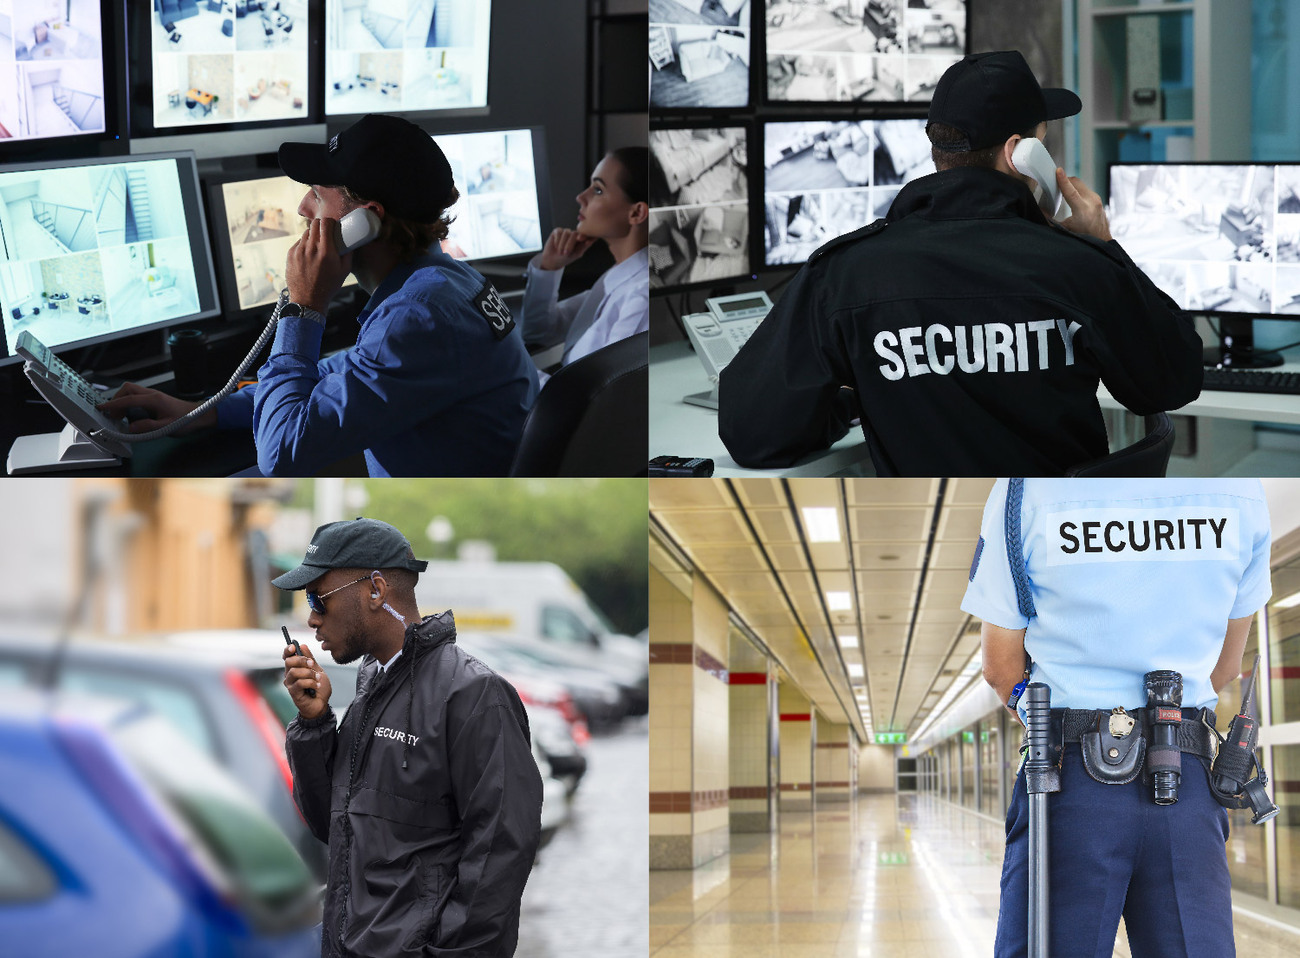 security-group-image